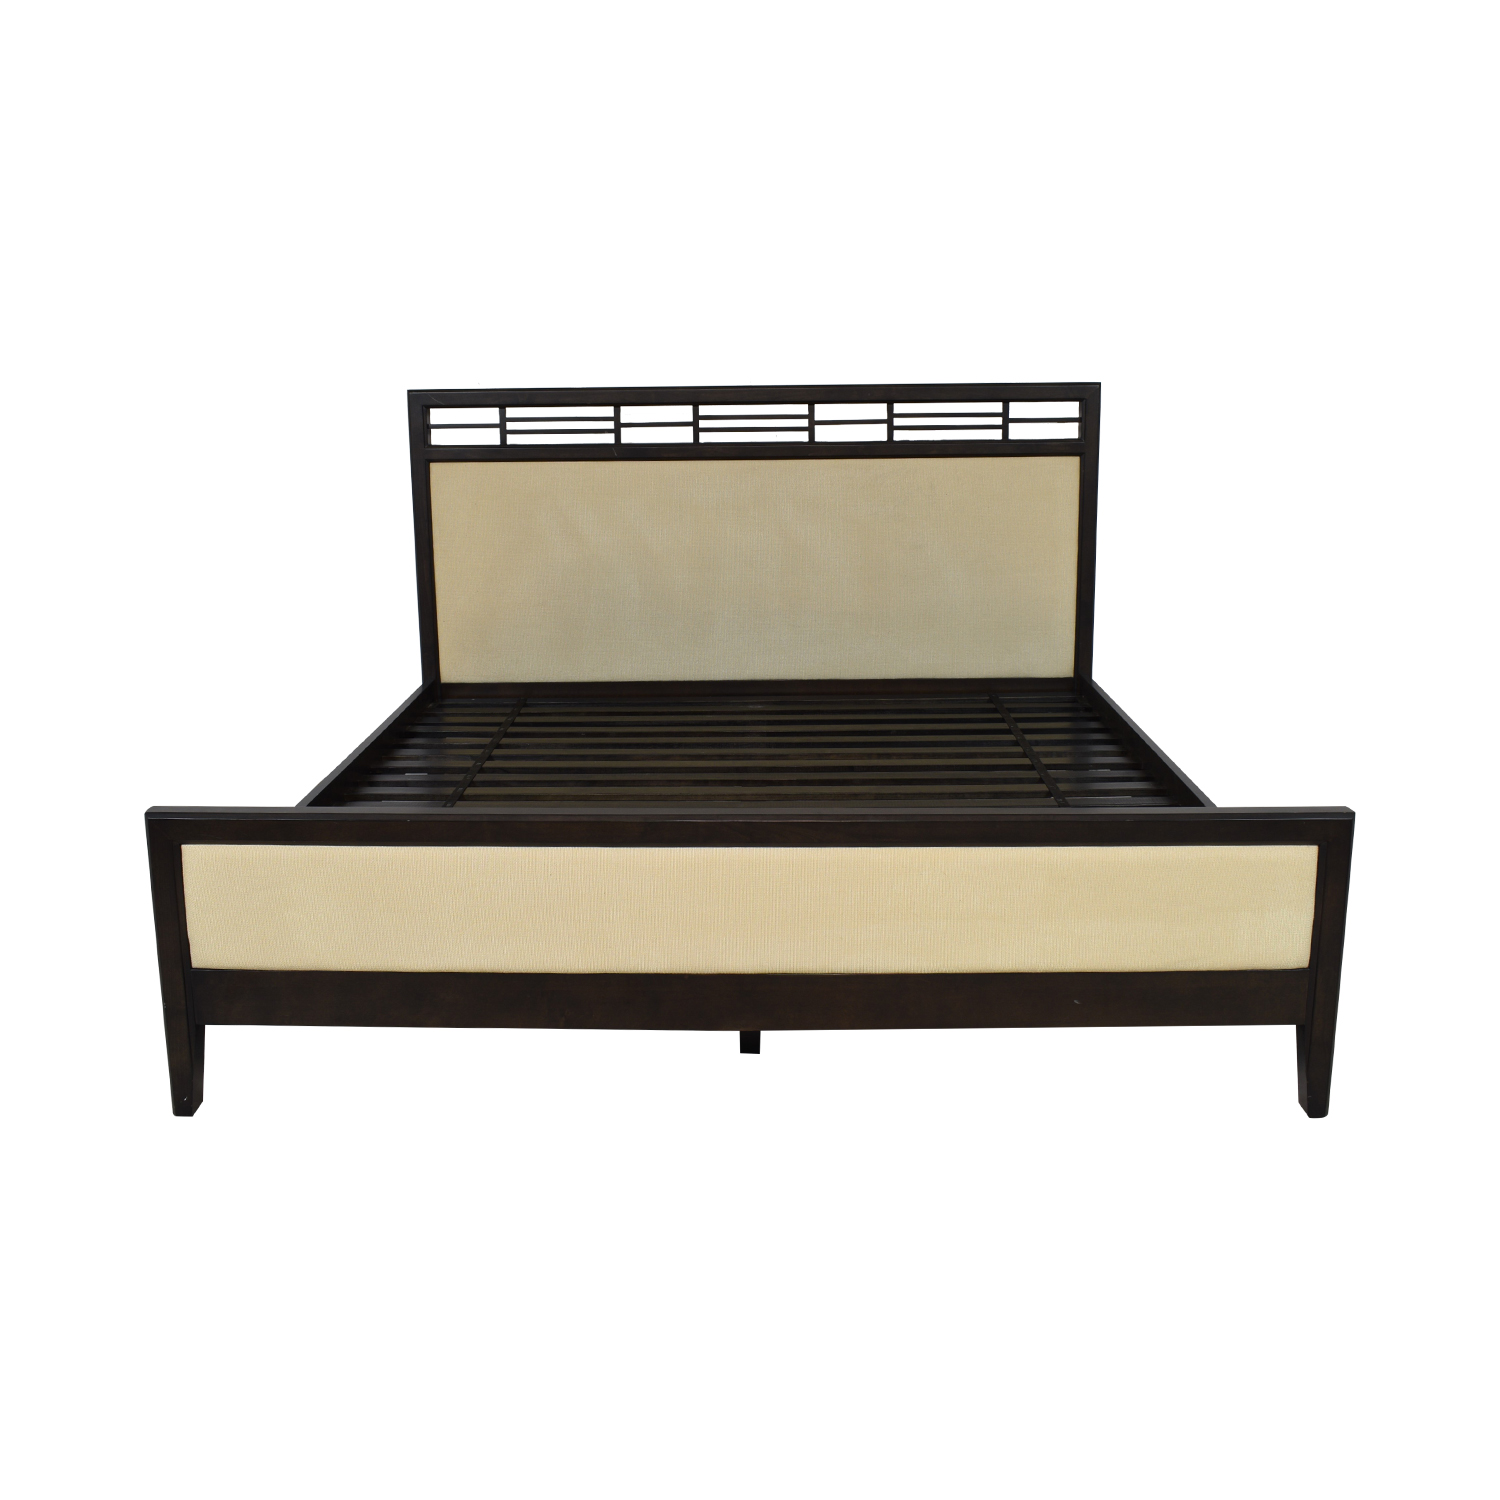 Crate & Barrel Crate & Barrel Master King Bed pa